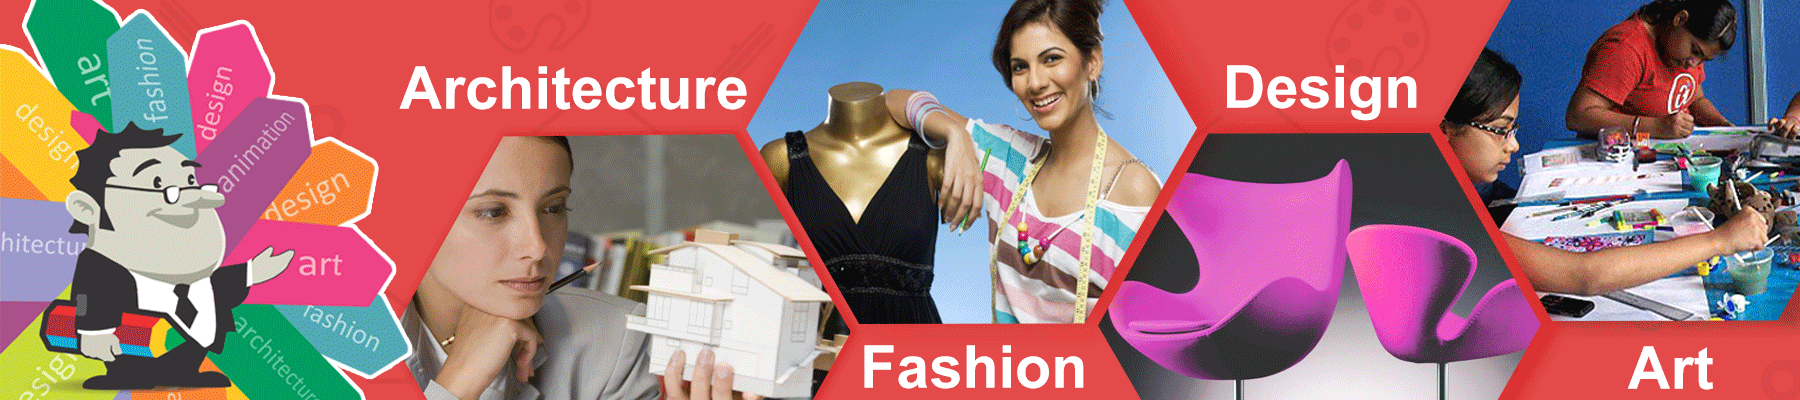 Career Guidance For Design Fashion Architecture And Art